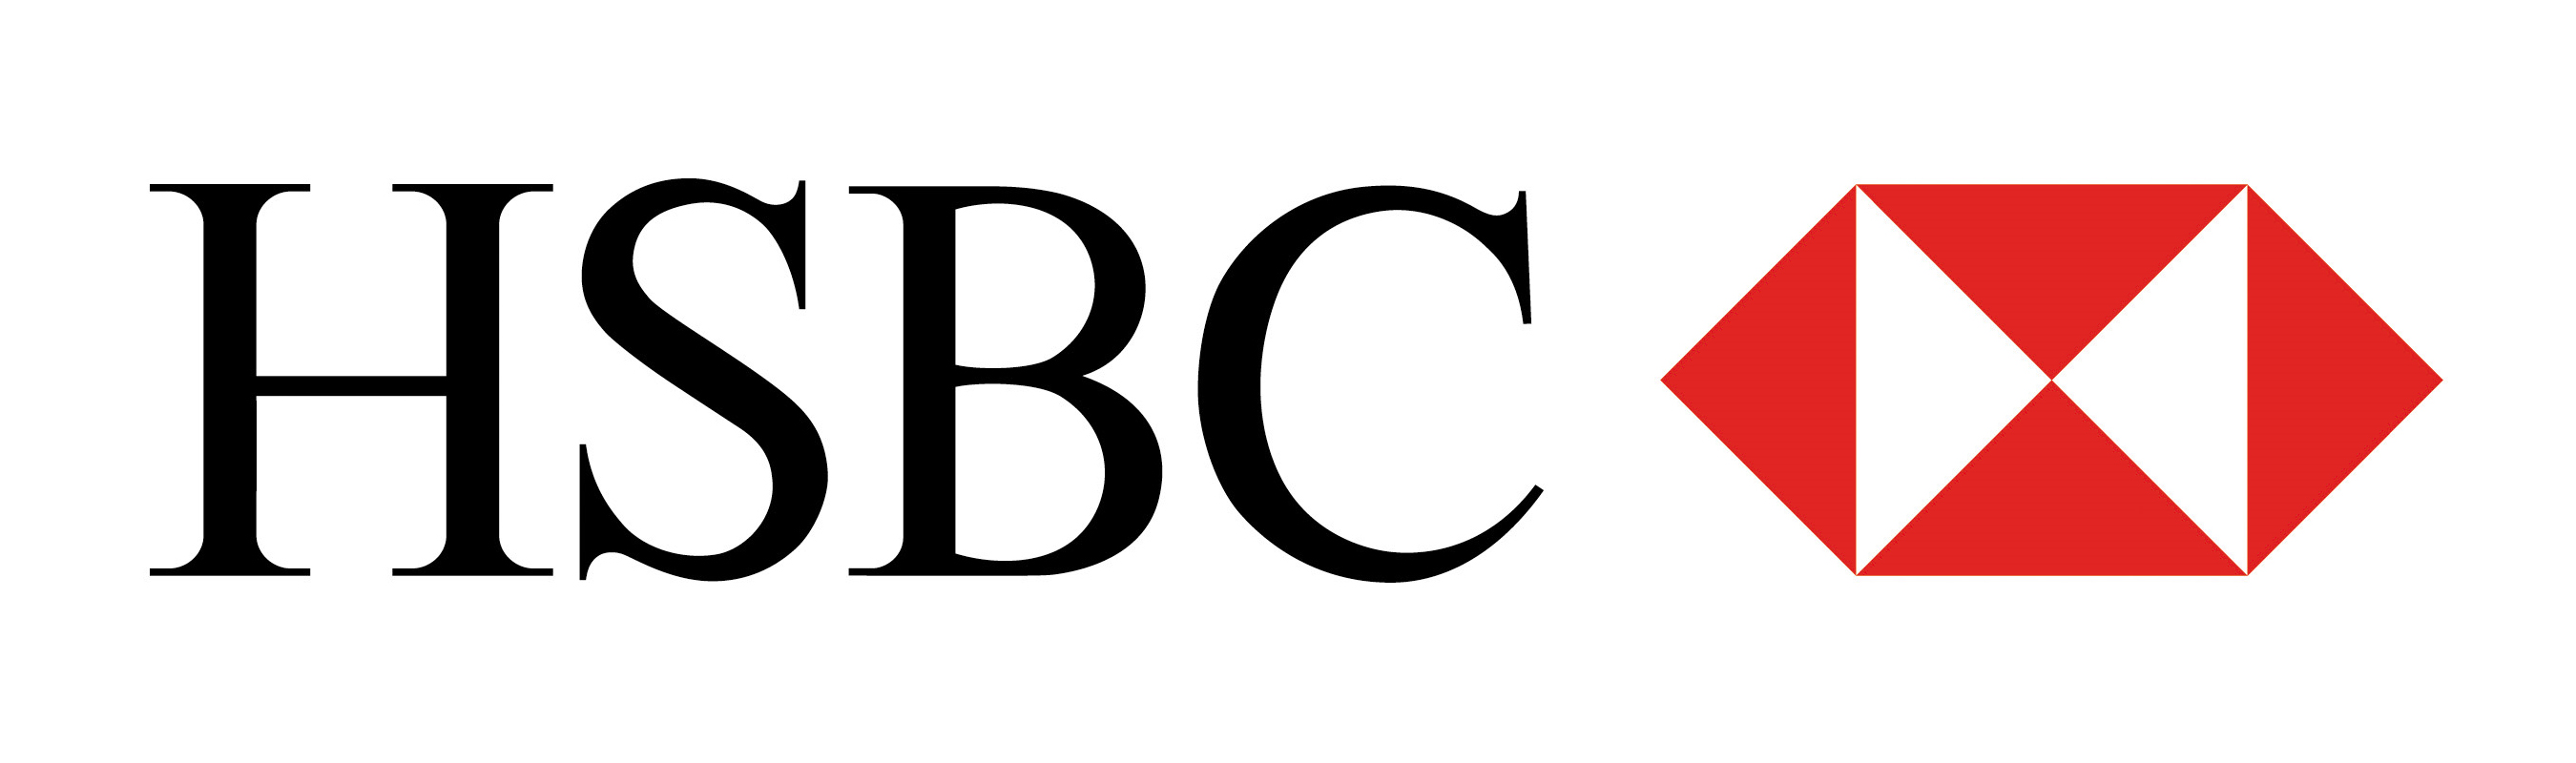 Hsbc Logo Hsbc Symbol Meaning History And Evolution